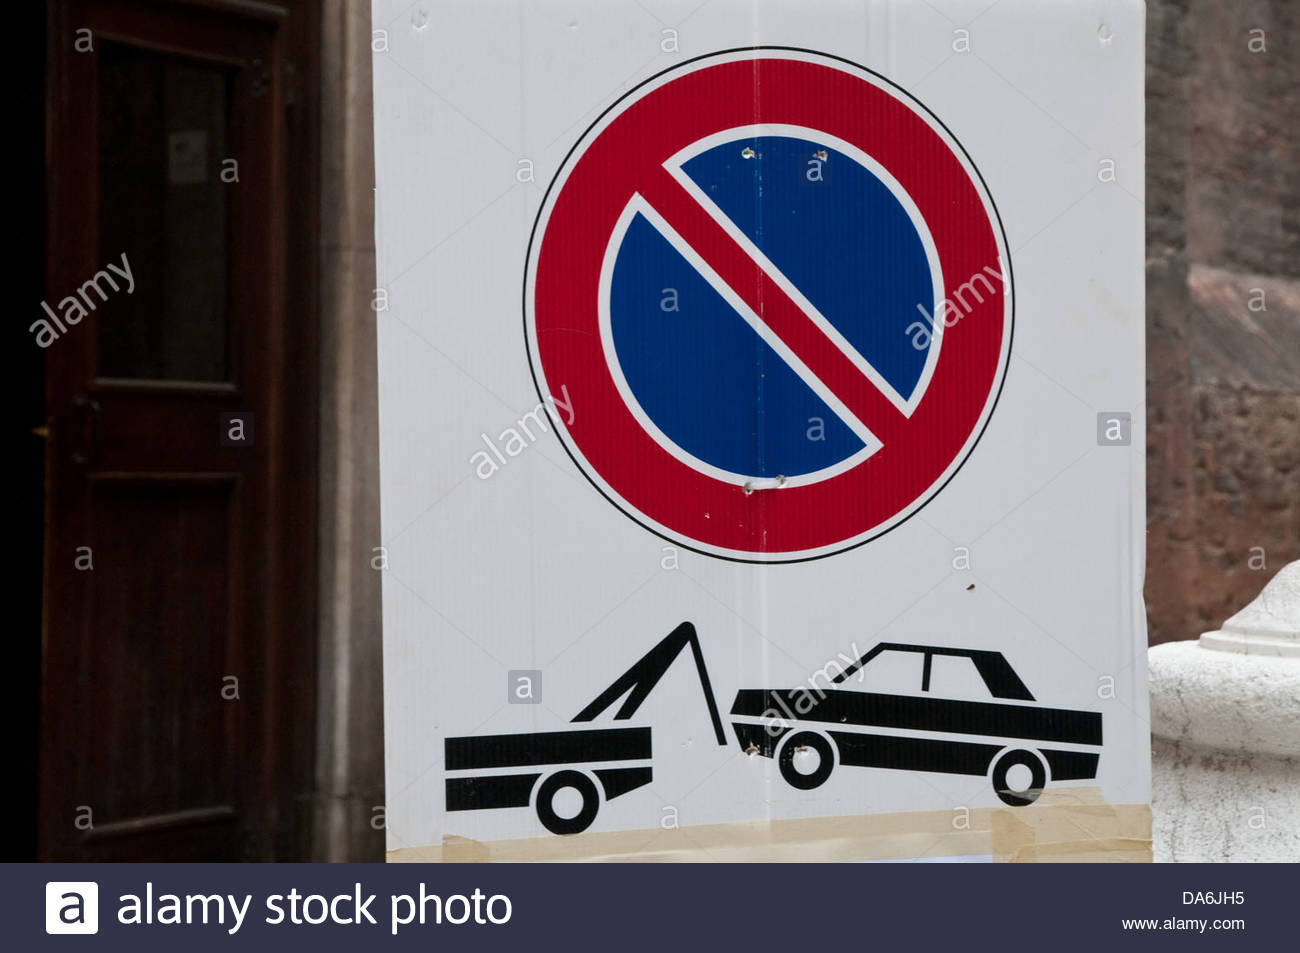 forced removal,no parking - Stock Image